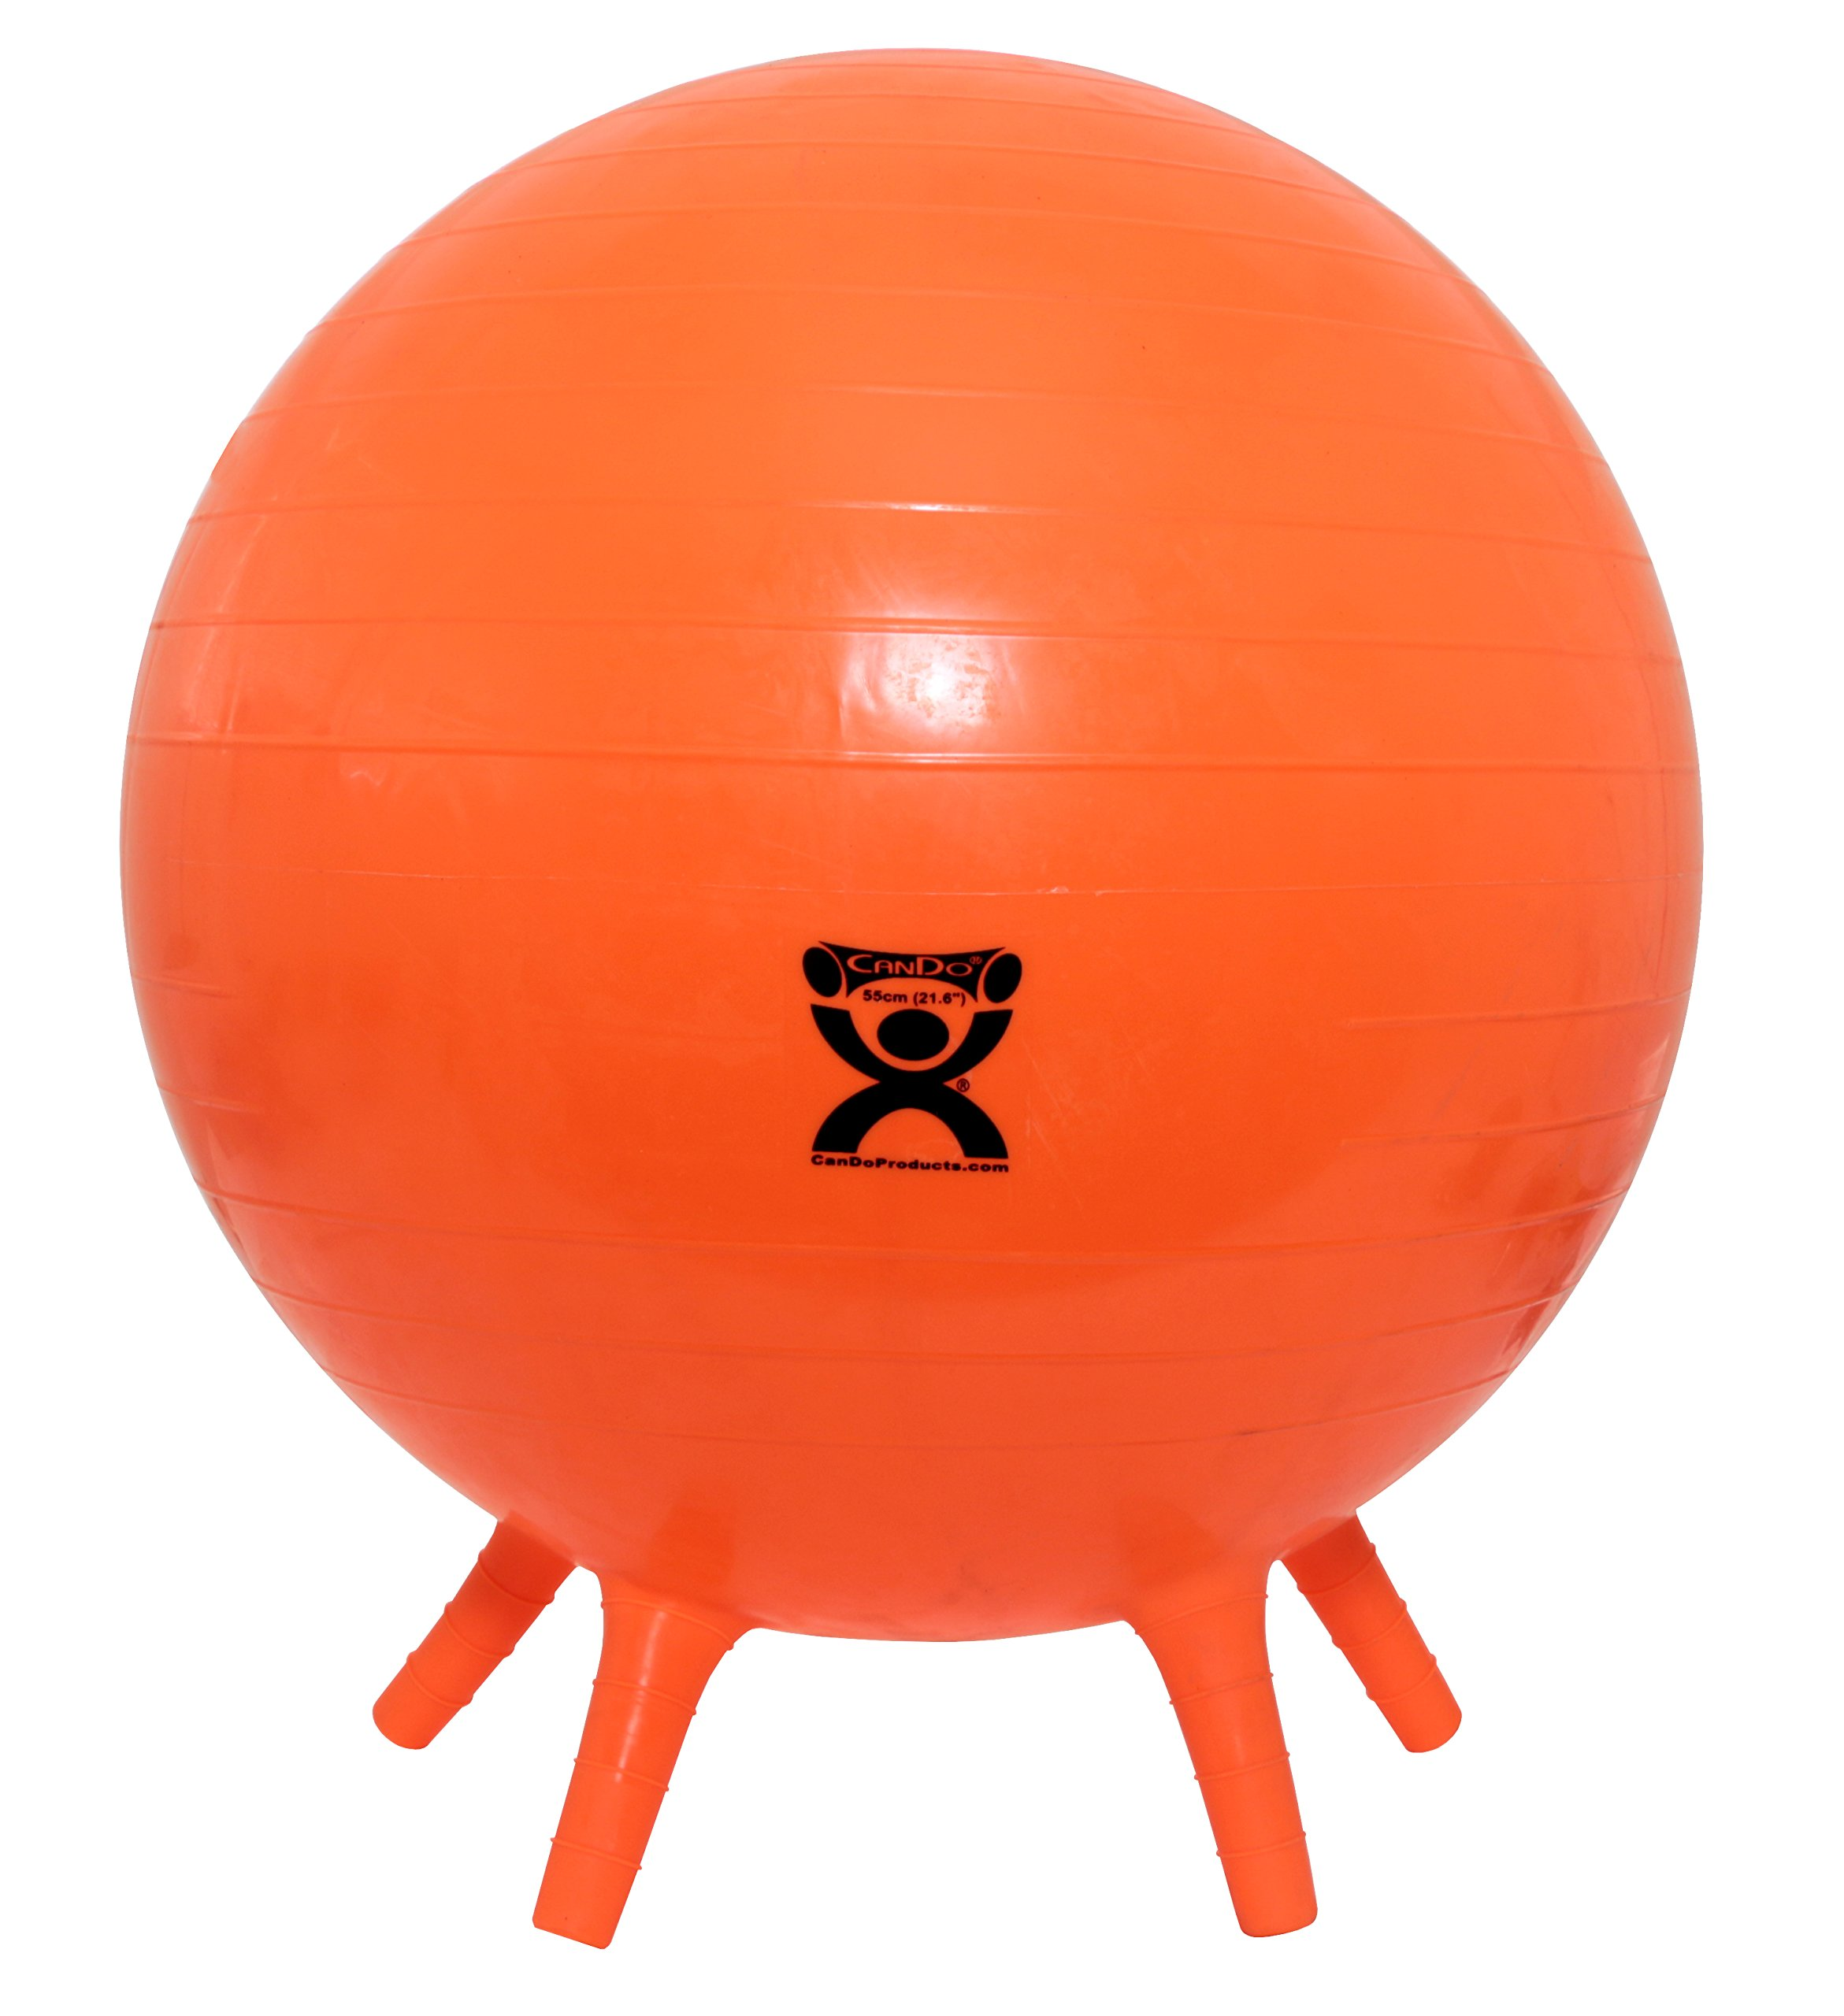 CanDo NonSlip Inflatable Exercise Ball with Stability Feet, Orange, 21.6''